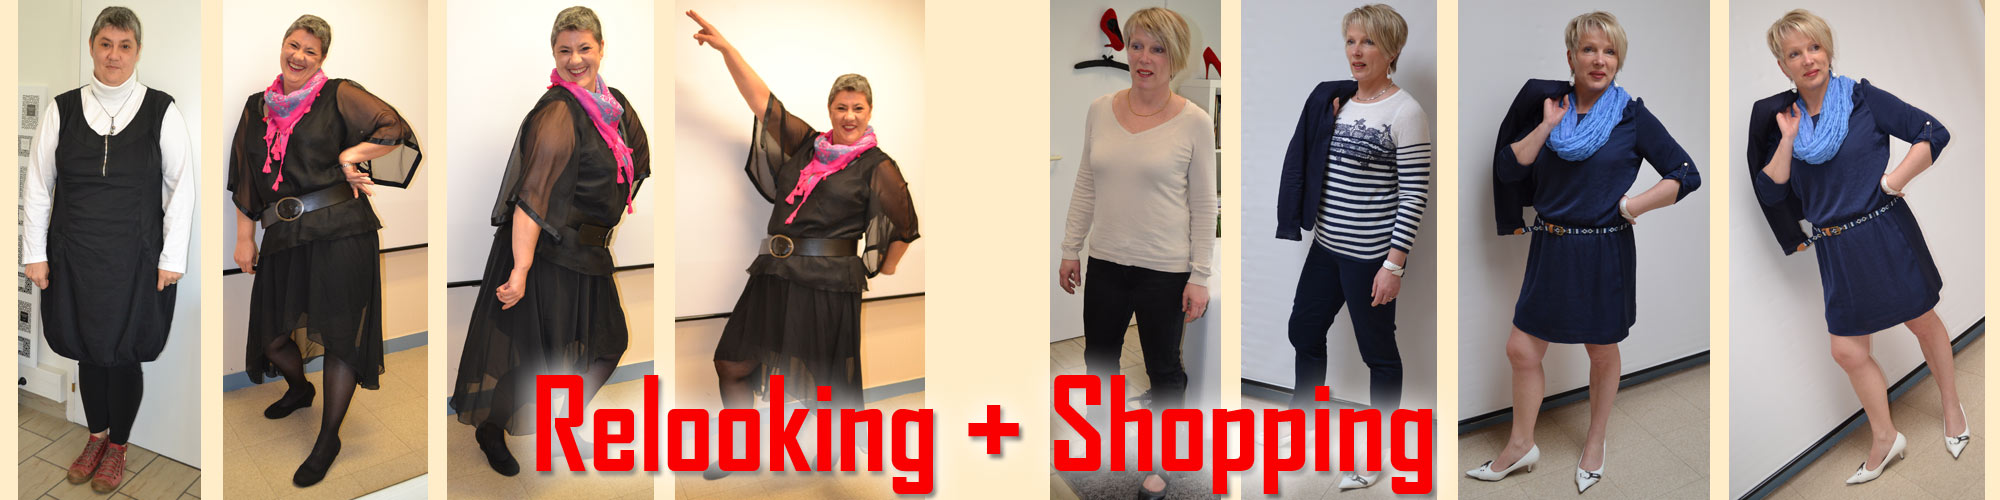 relooking_shopping_diapo_3